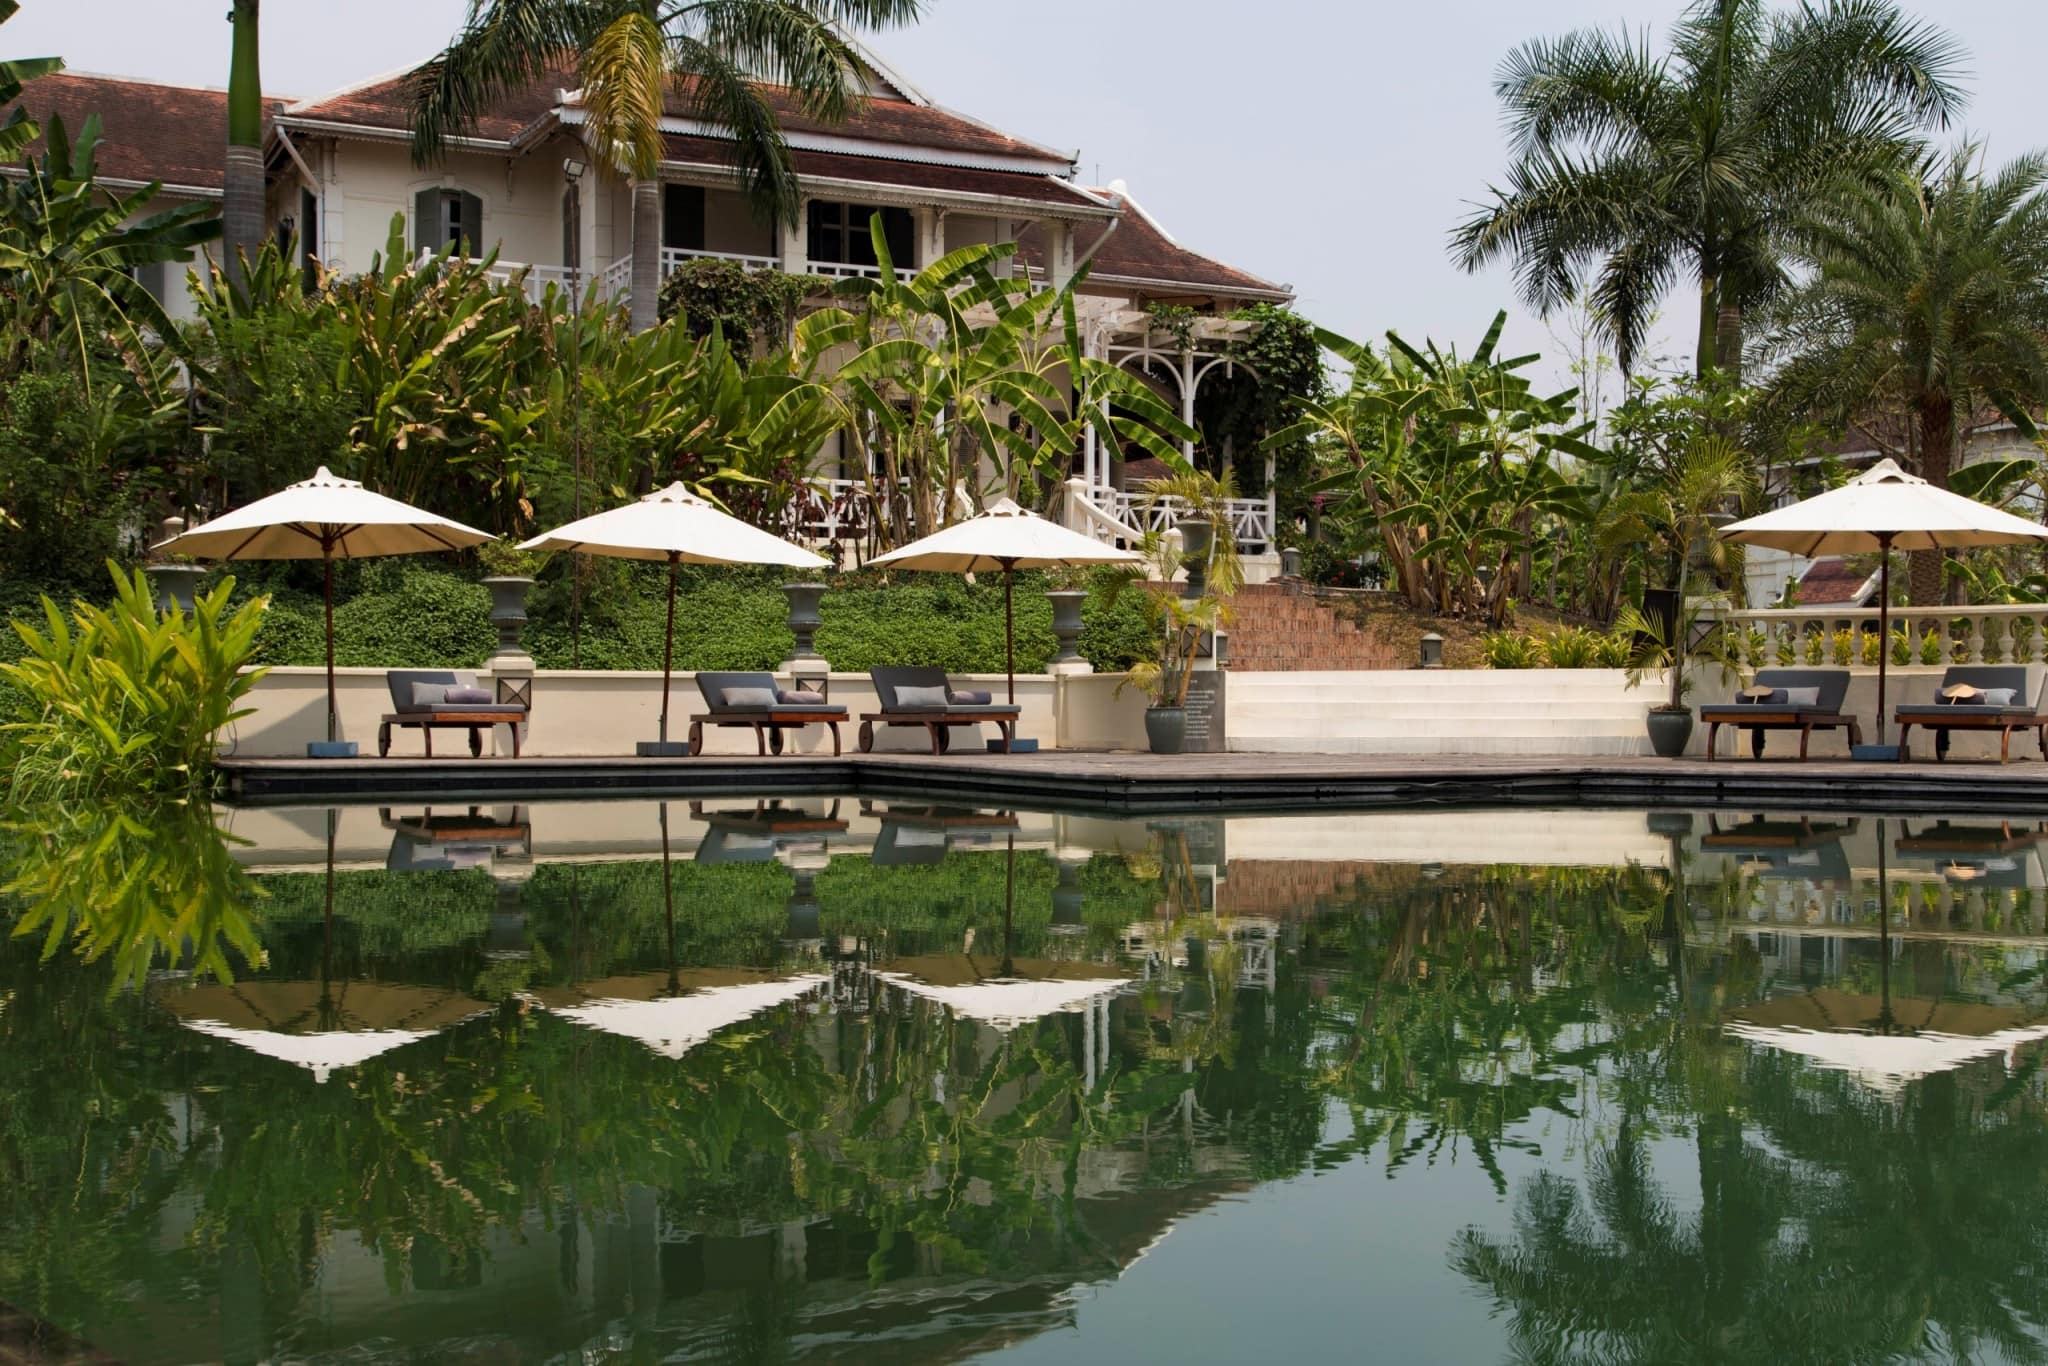 Laos luang say residence luang prabang a small luxury for Luang prabang luxury hotels